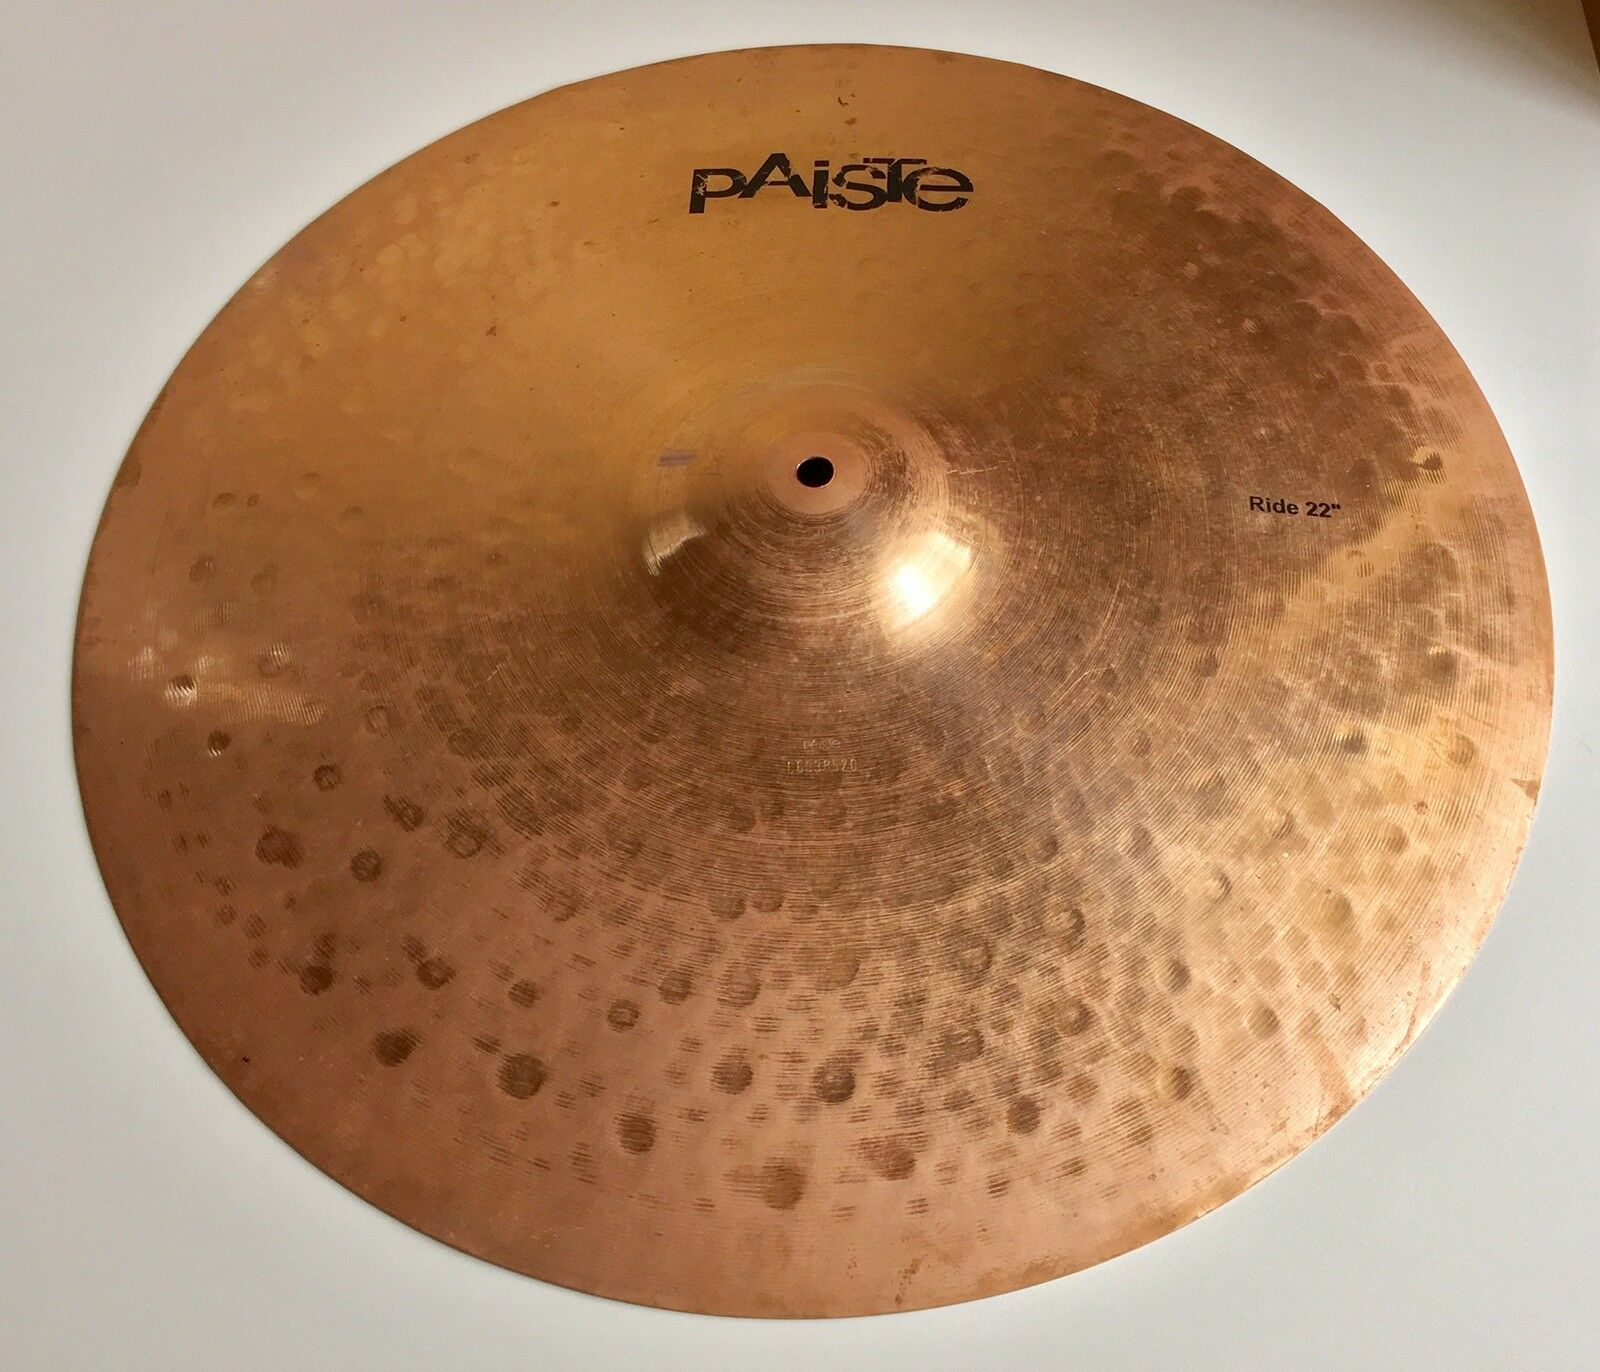 22  Paiste Prototype Ride Cymbal, 3294 Grams